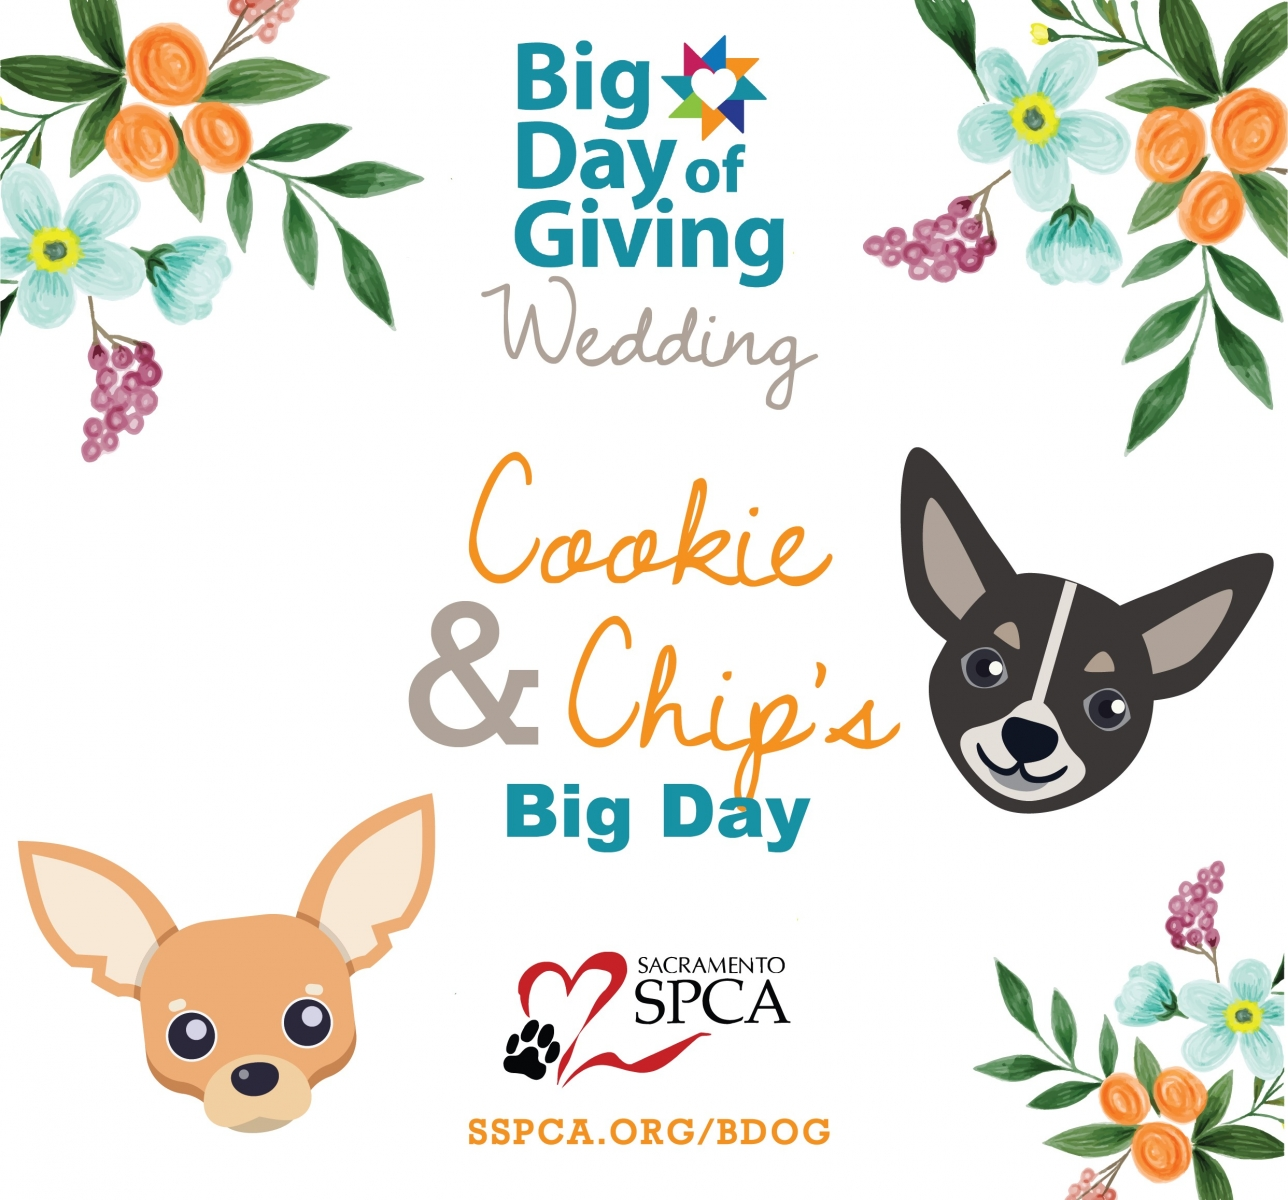 Shelter pups Cookie and Chip join one another in matrimony for a special fundraising ceremony for the Sacramento SPCA. (Graphic courtesy of Sacramento SPCA)